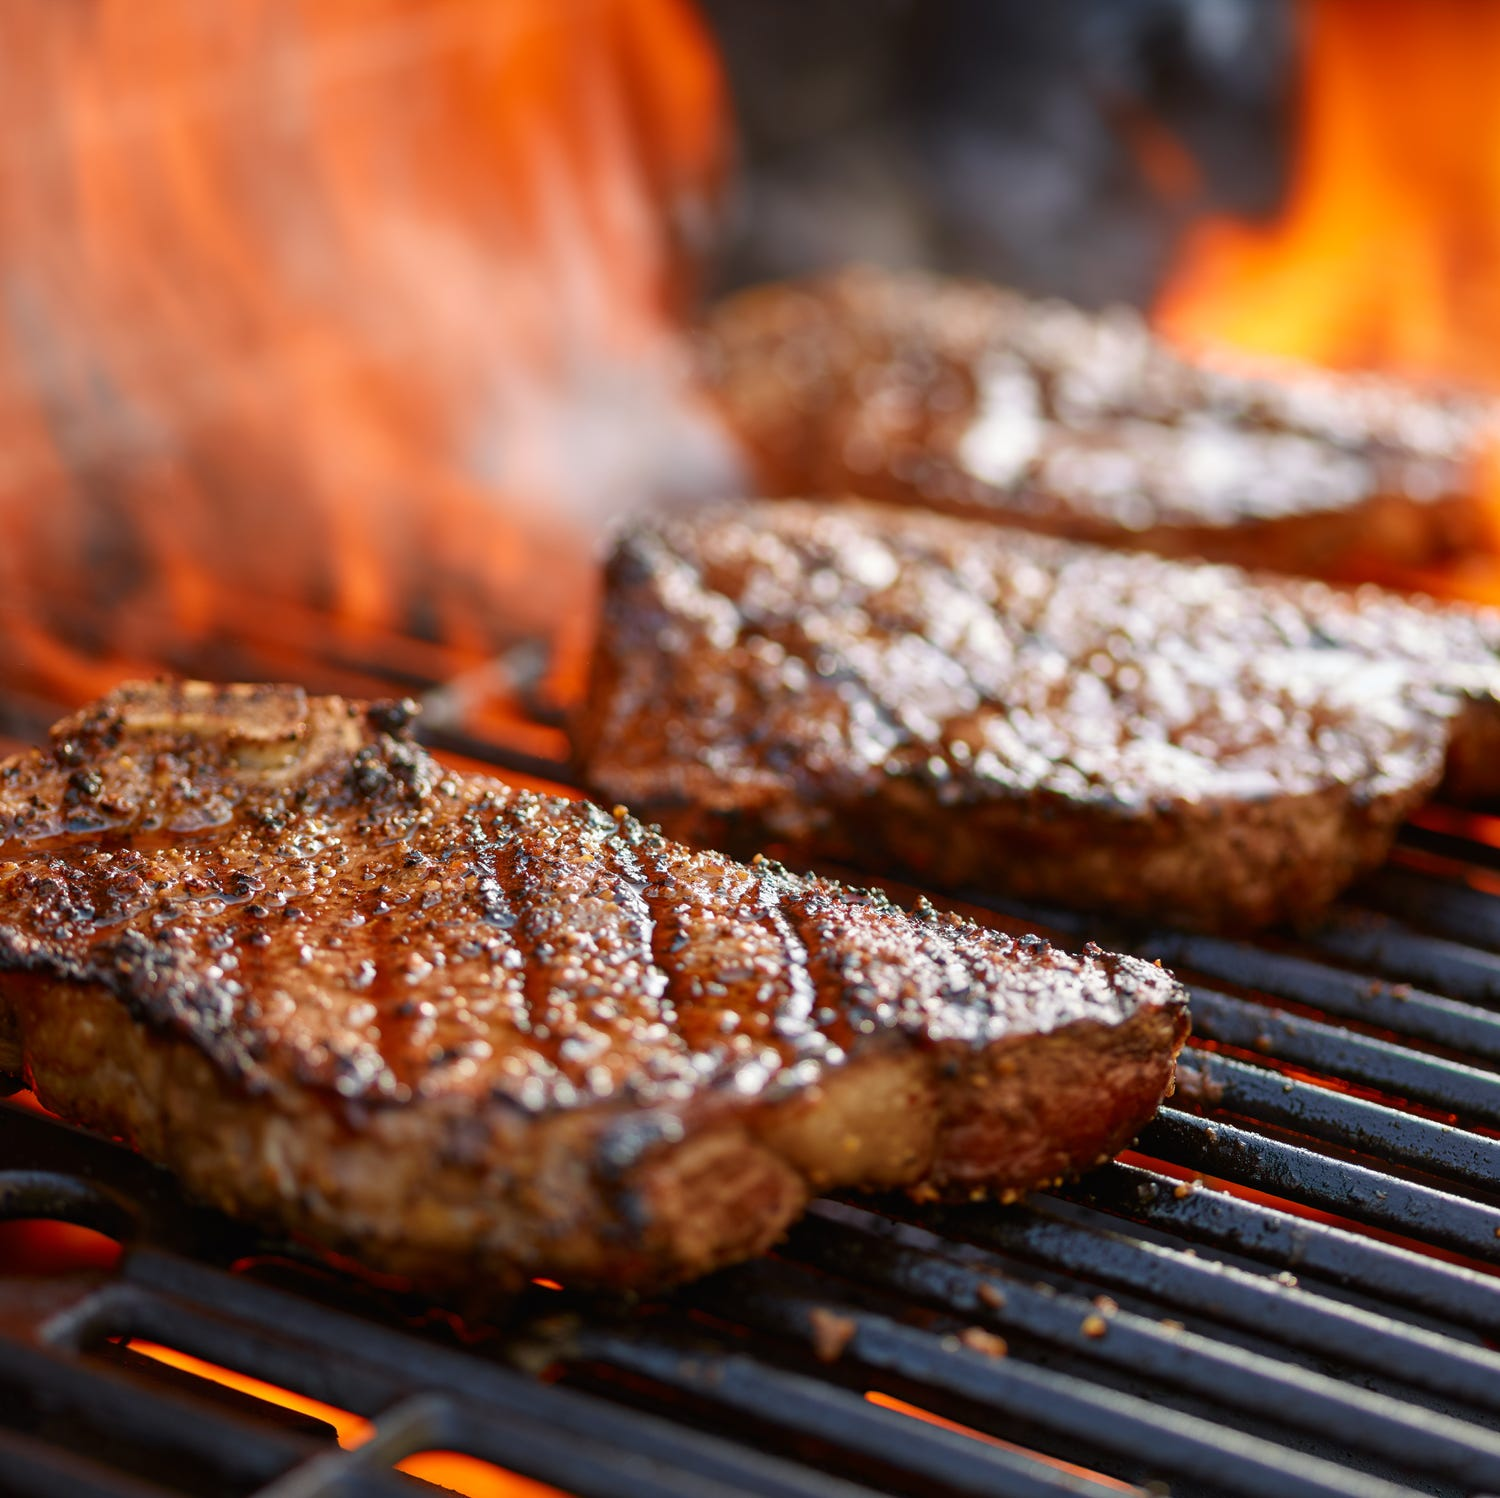 When it comes to steaks, Brevardians like their filets cooked medium.